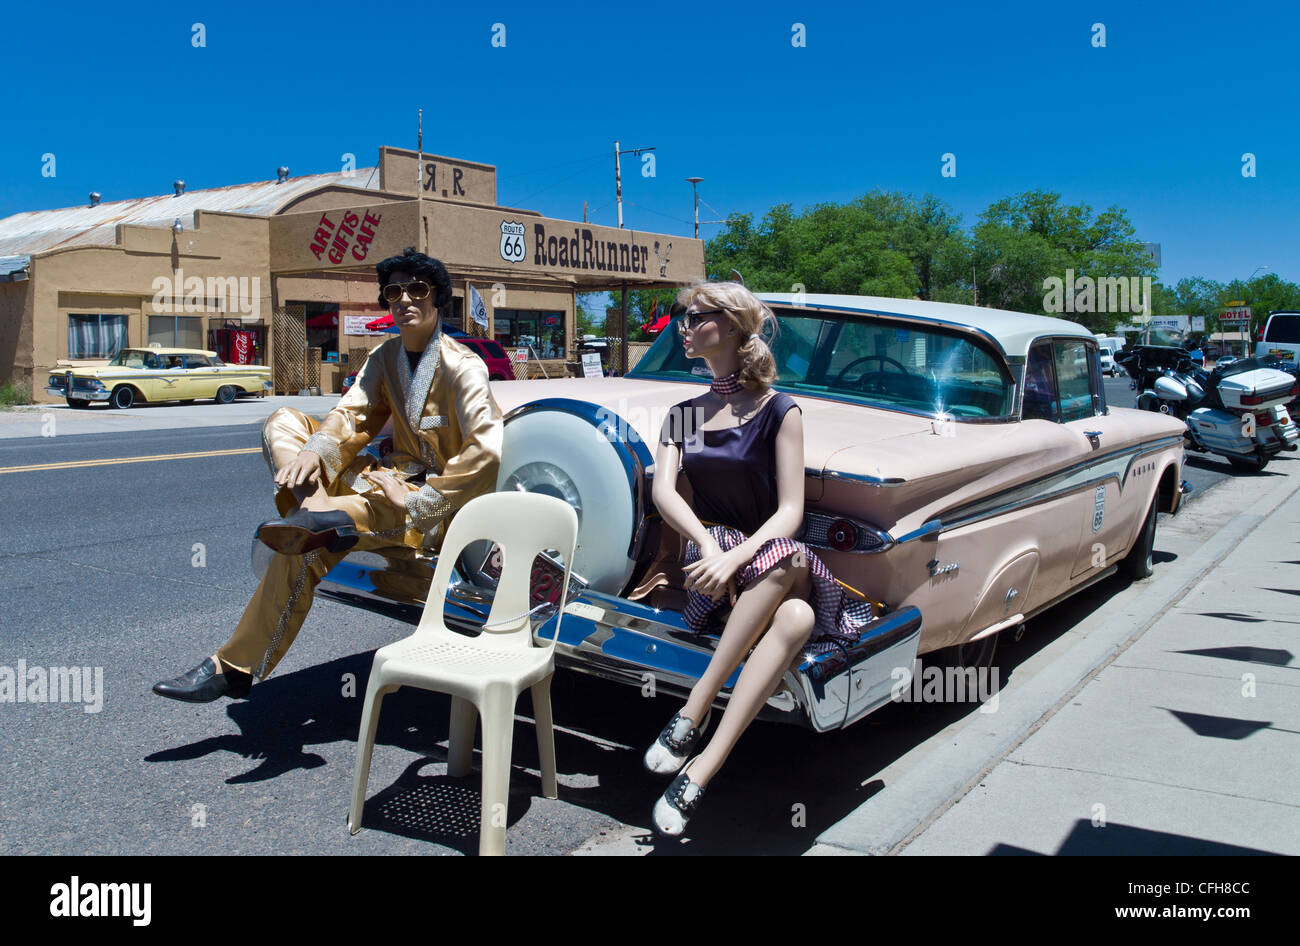 USA, Arizona, Seligman, old car and dummies on Route 66 - Stock Image